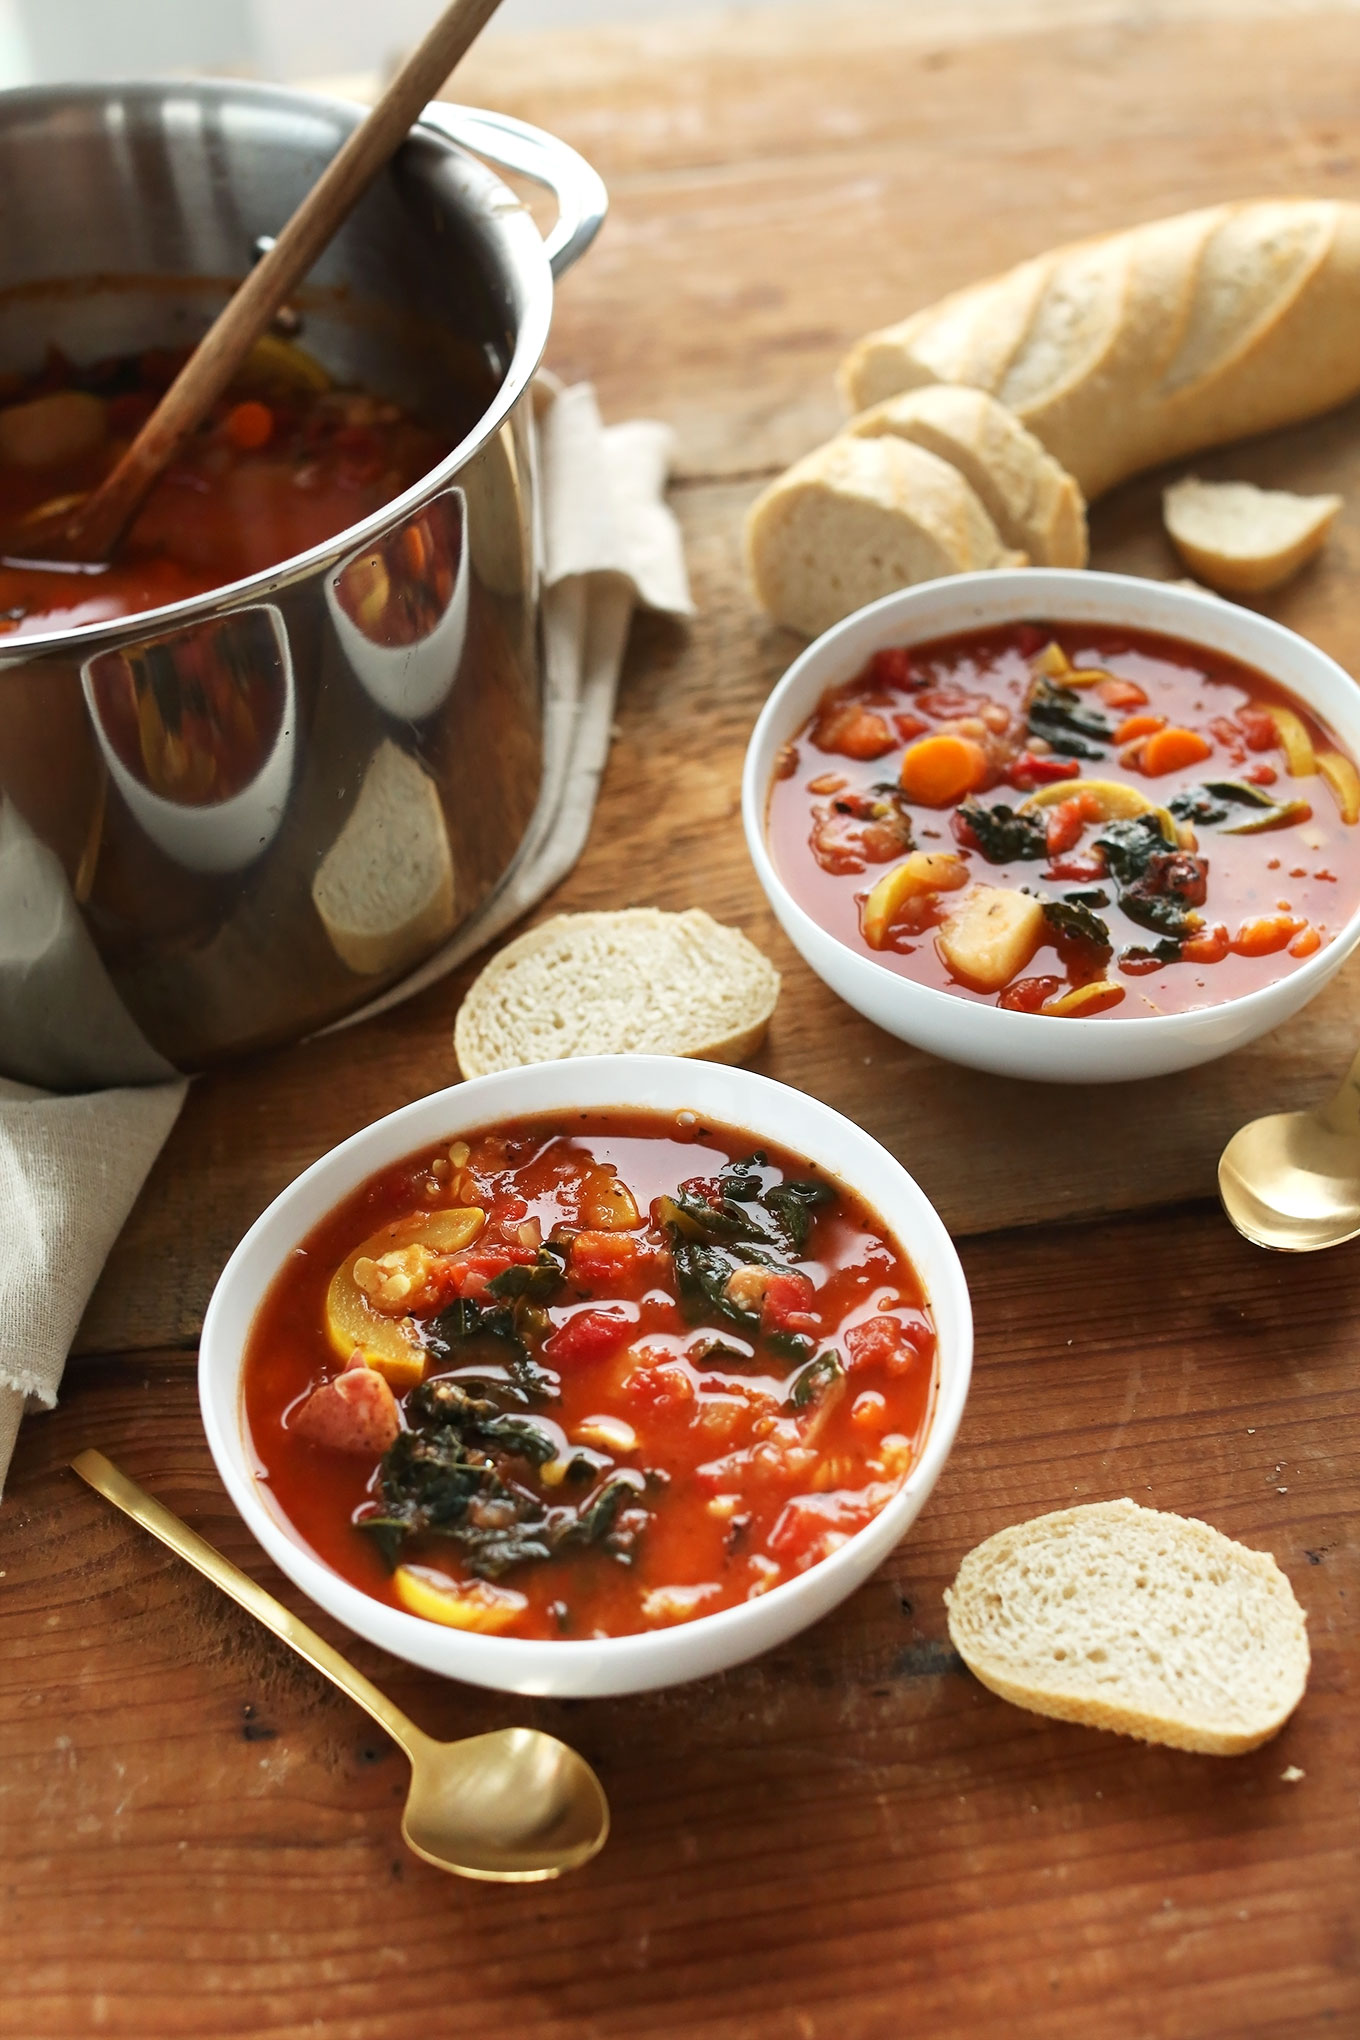 Bowls of our 1-Pot Veggie and White Bean Stew with slices of bread